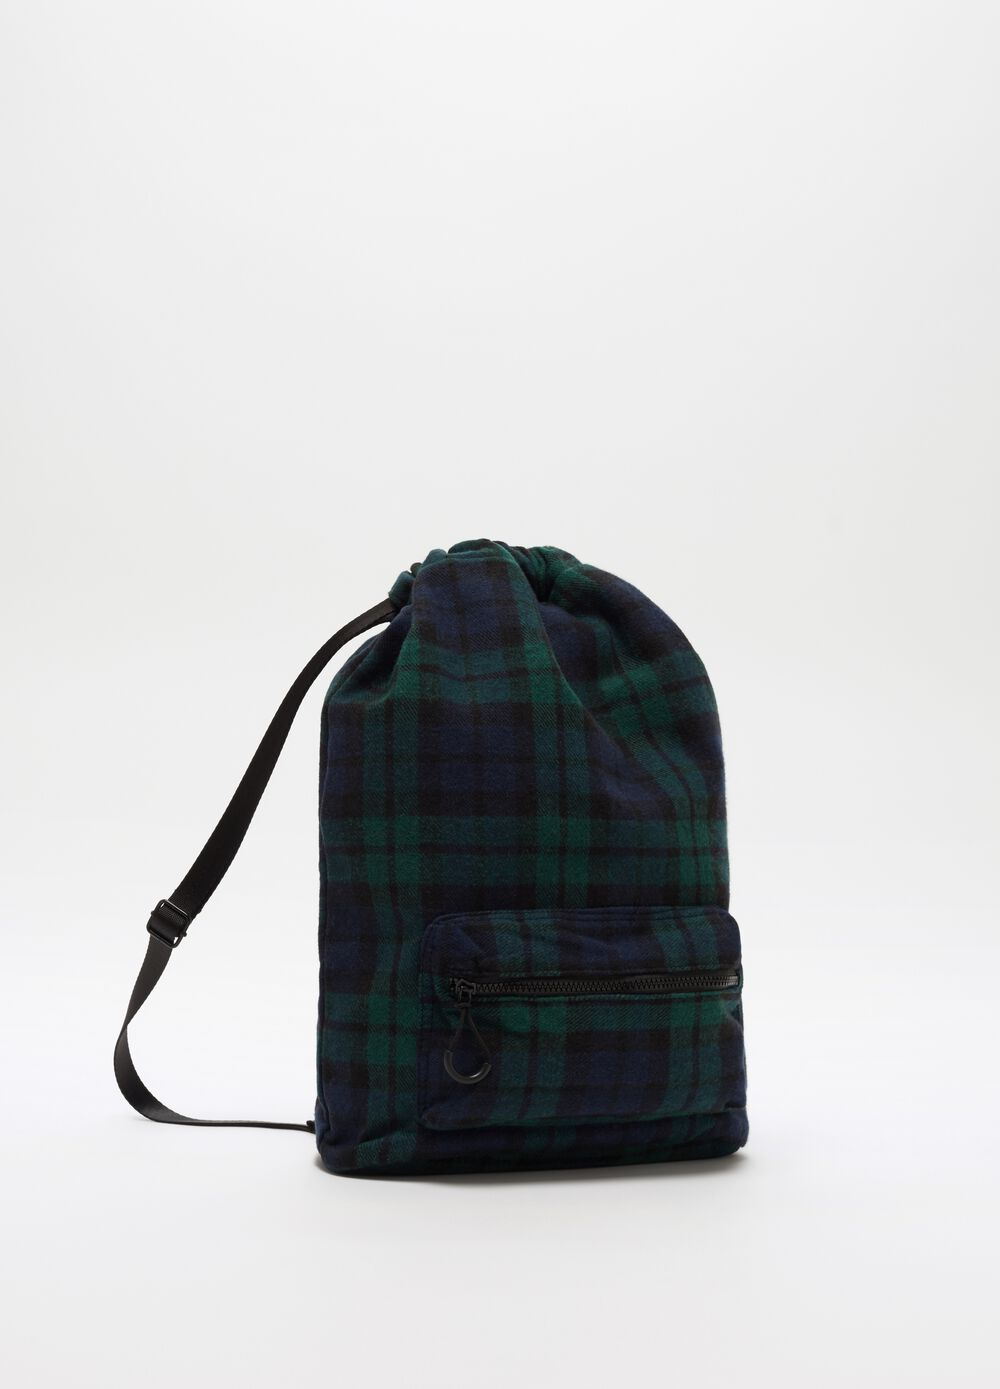 Backpack with pocket and check pattern